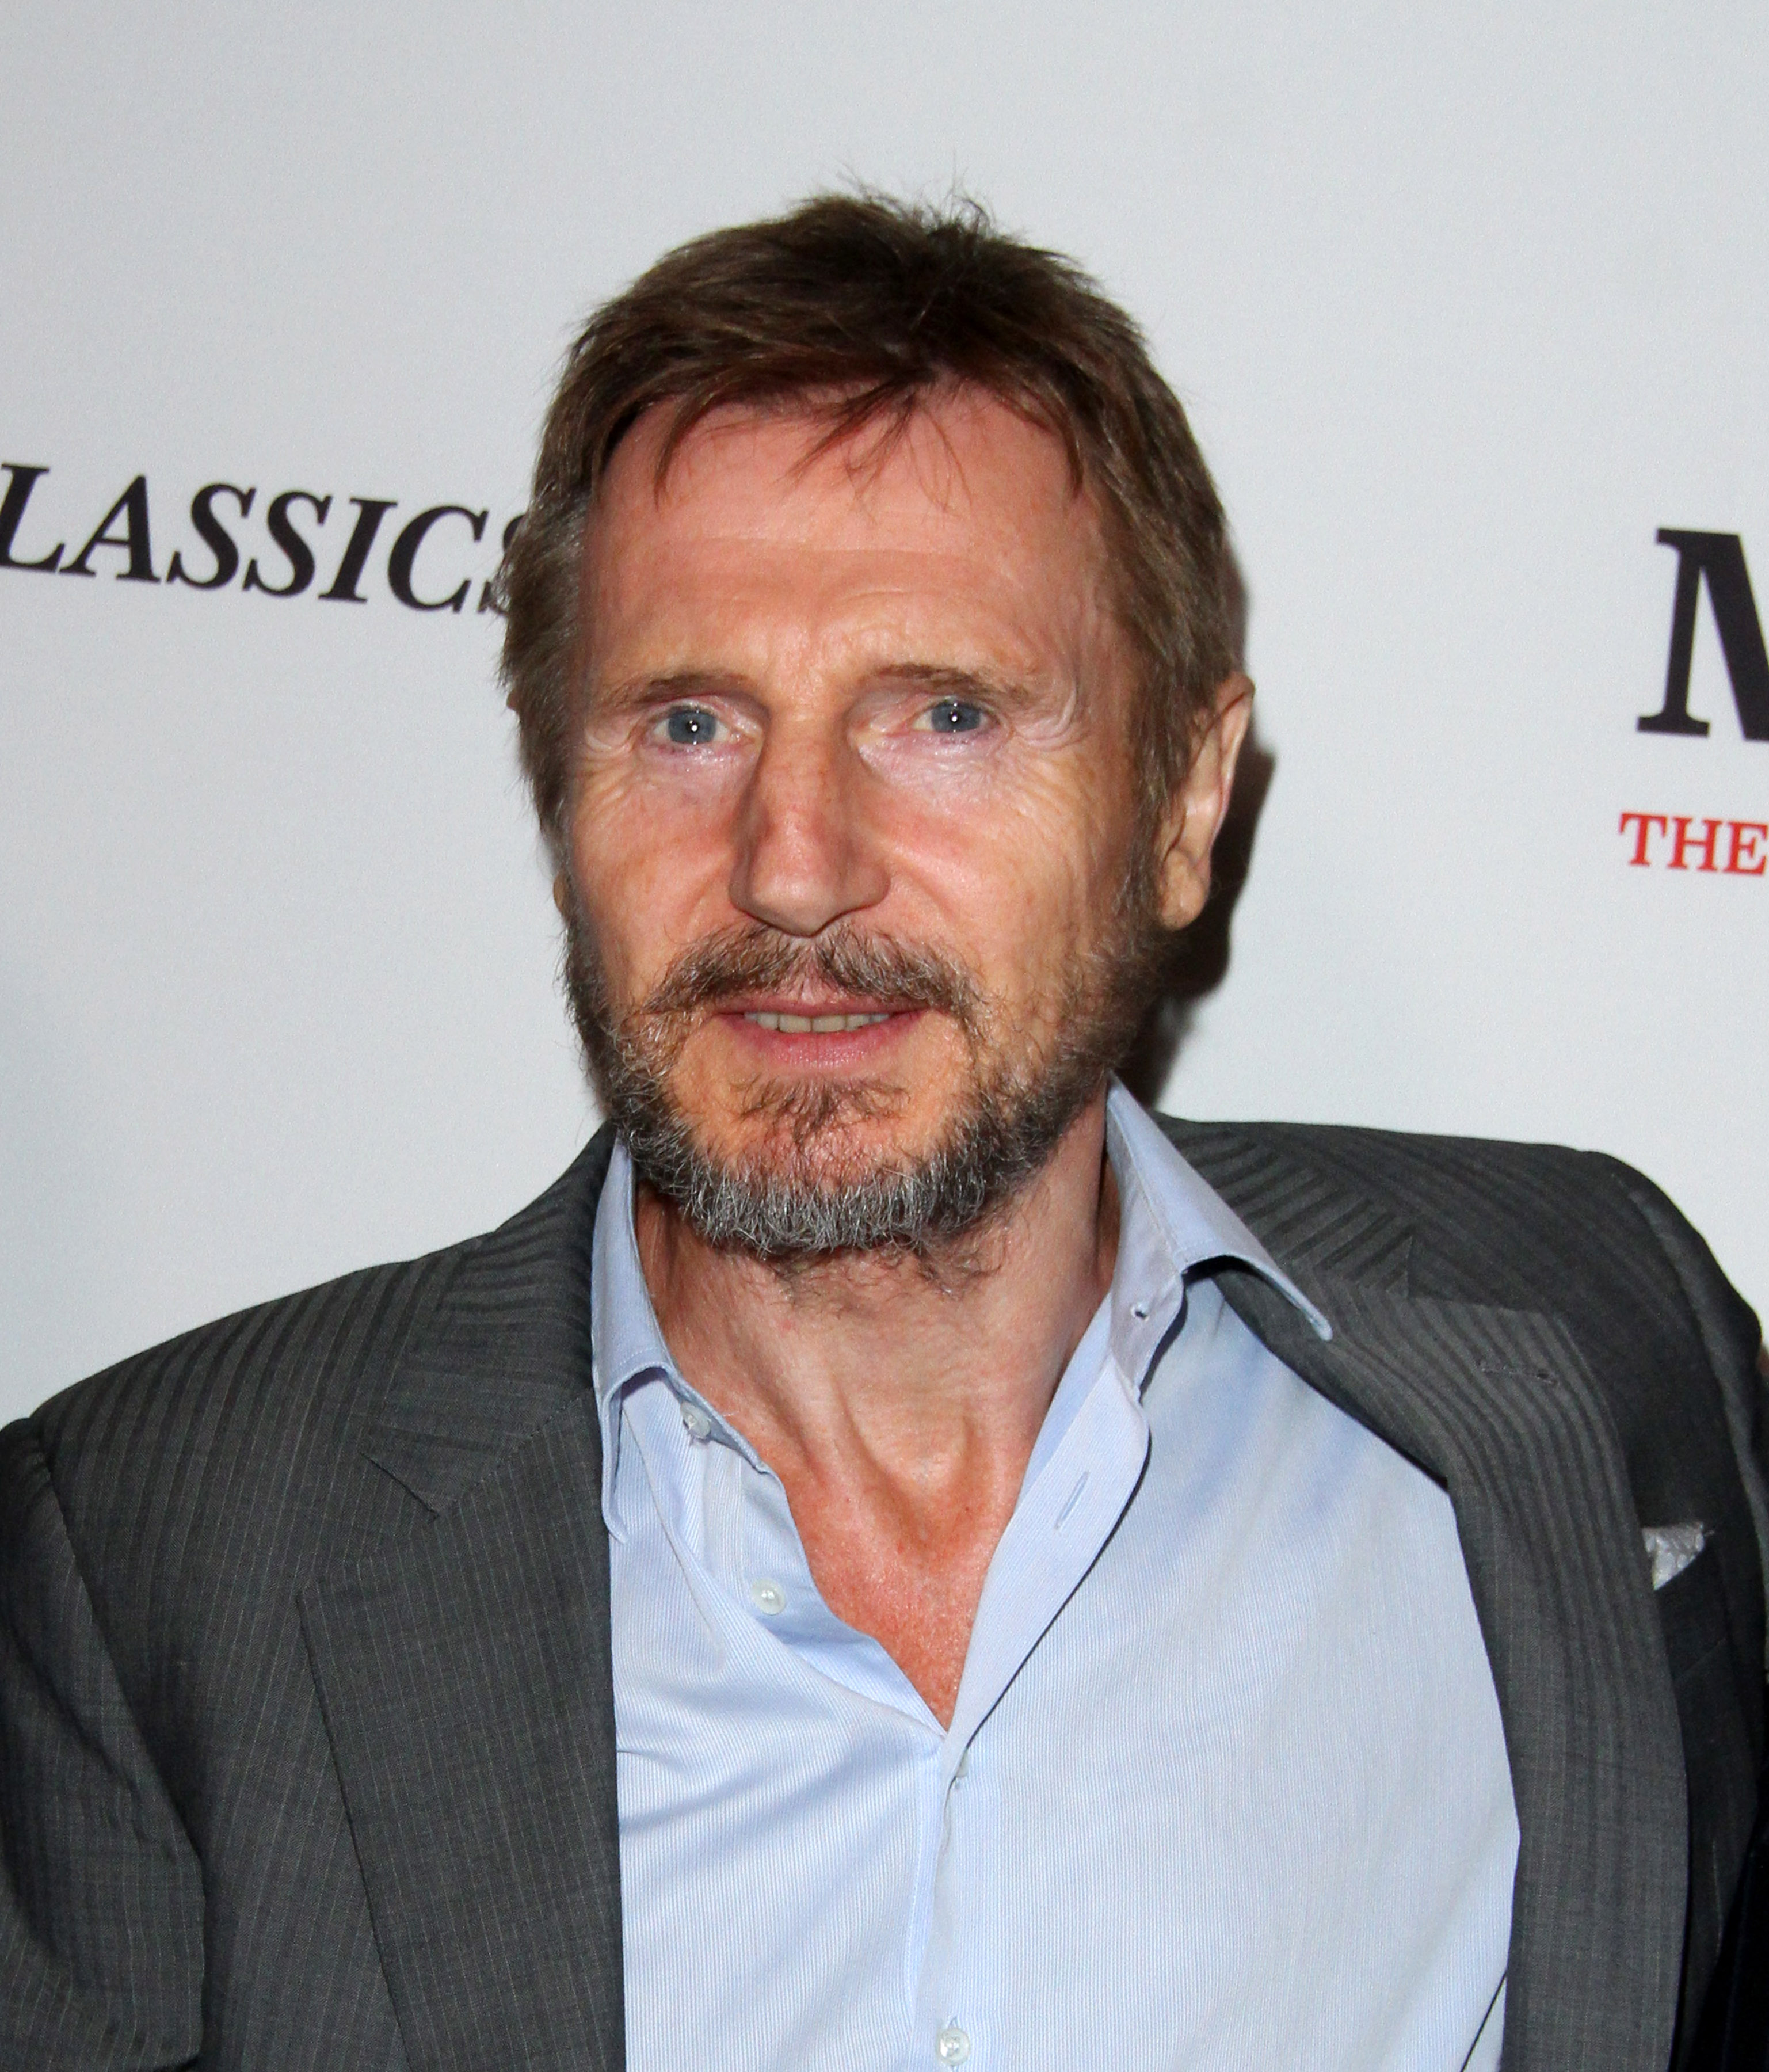 'Mark Felt: The Man Who Brought Down The White House' Los Angeles Premiere held at the Writers Guild Theatre in Beverly Hills - Arrivals  Featuring: Liam Neeson Where: Los Angeles, California, United States When: 27 Sep 2017 Credit: Adriana M. Barraza/WENN.com